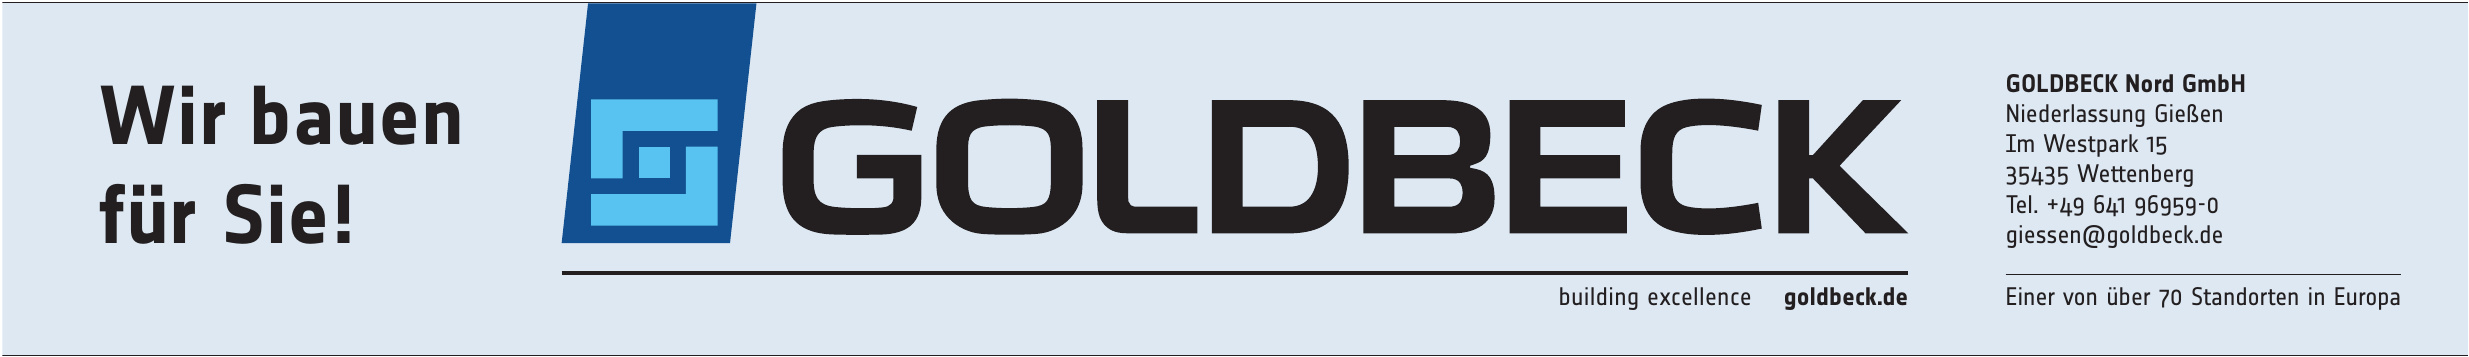 GOLDBECK Nord GmbH